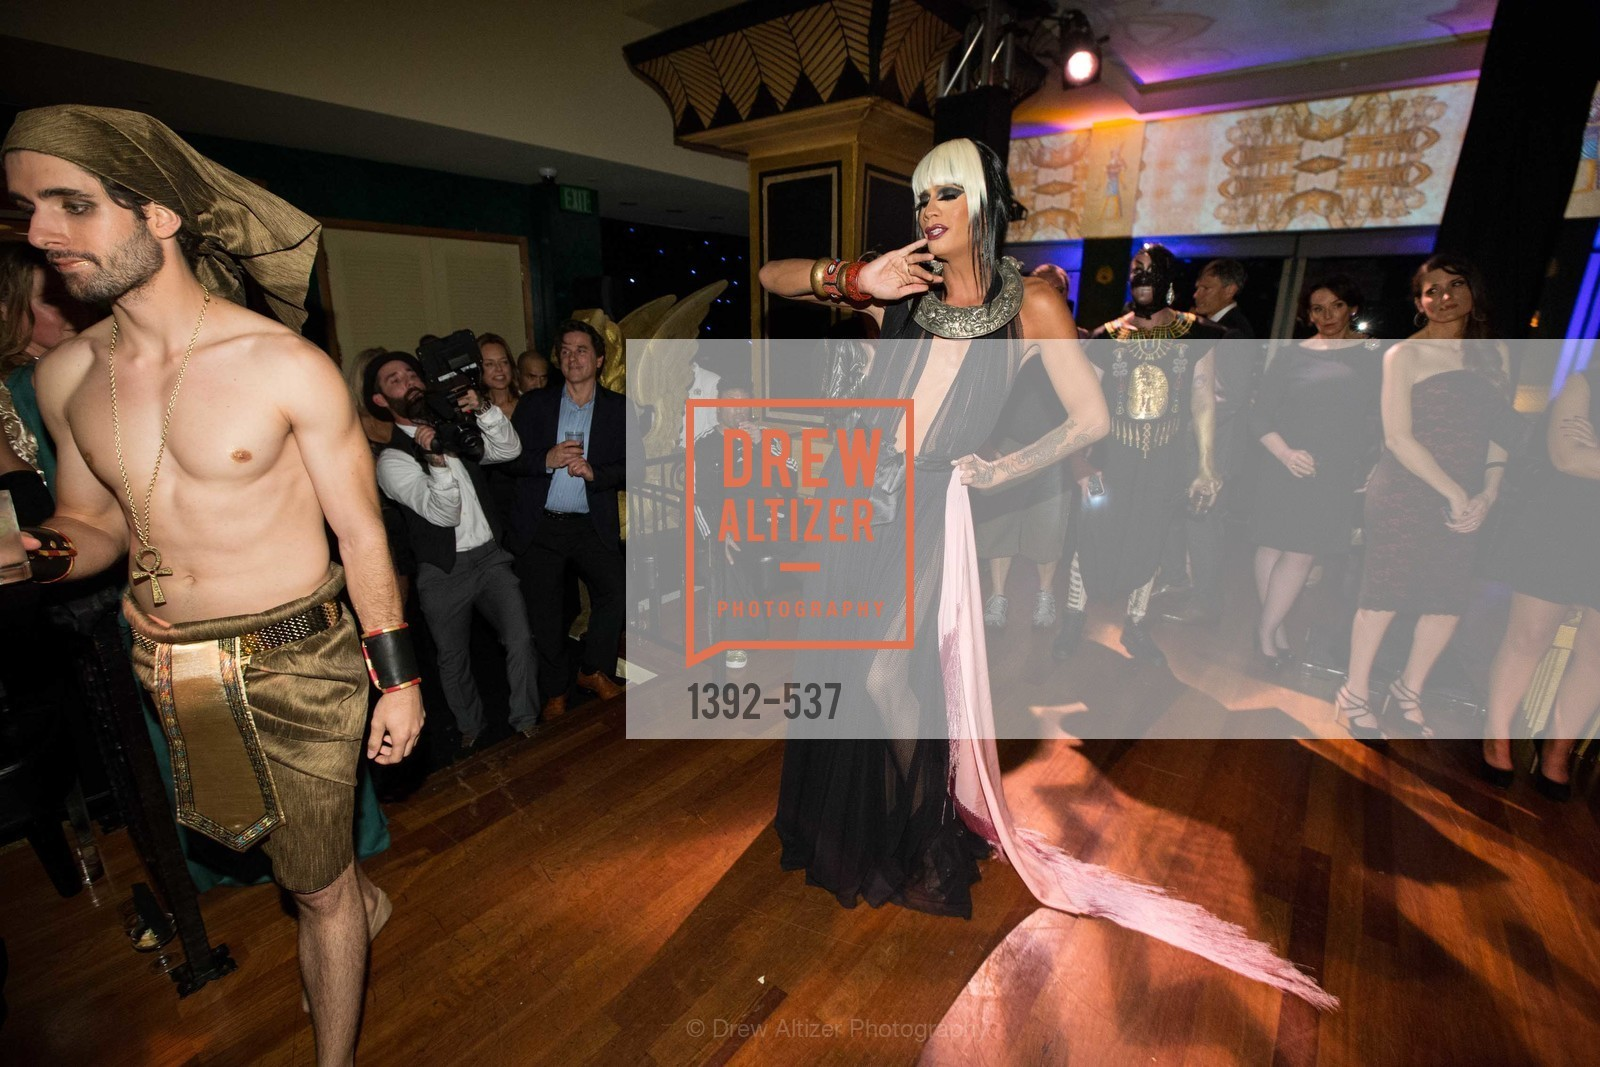 Performance, TOP OF THE MARK'S 75TH Anniversary Party, US, November 6th, 2014,Drew Altizer, Drew Altizer Photography, full-service agency, private events, San Francisco photographer, photographer california